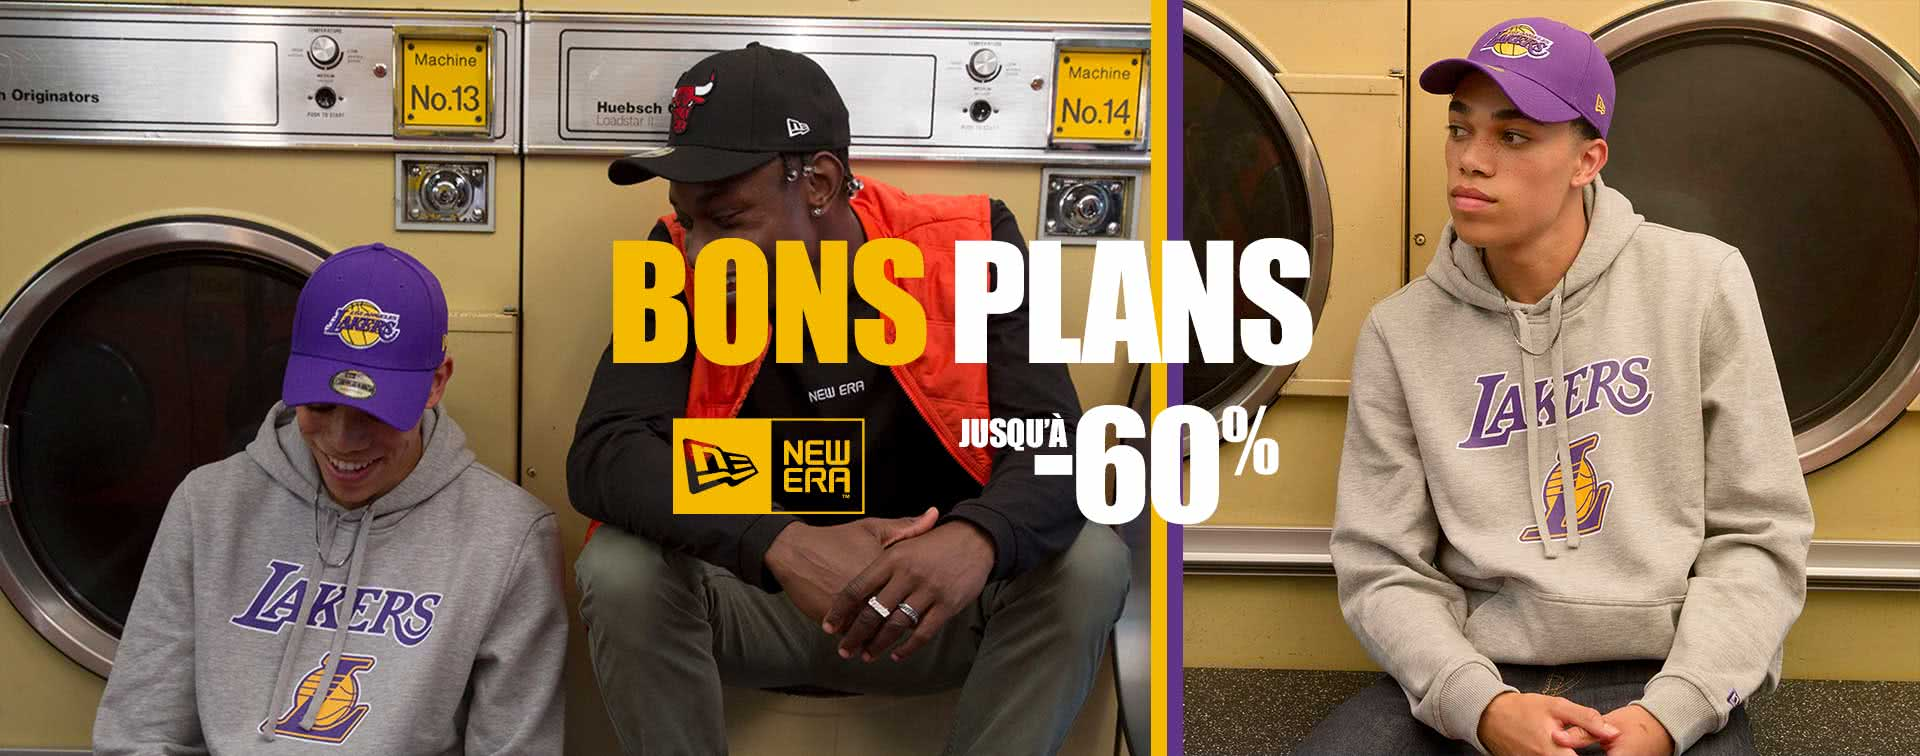 Bons plans New Era